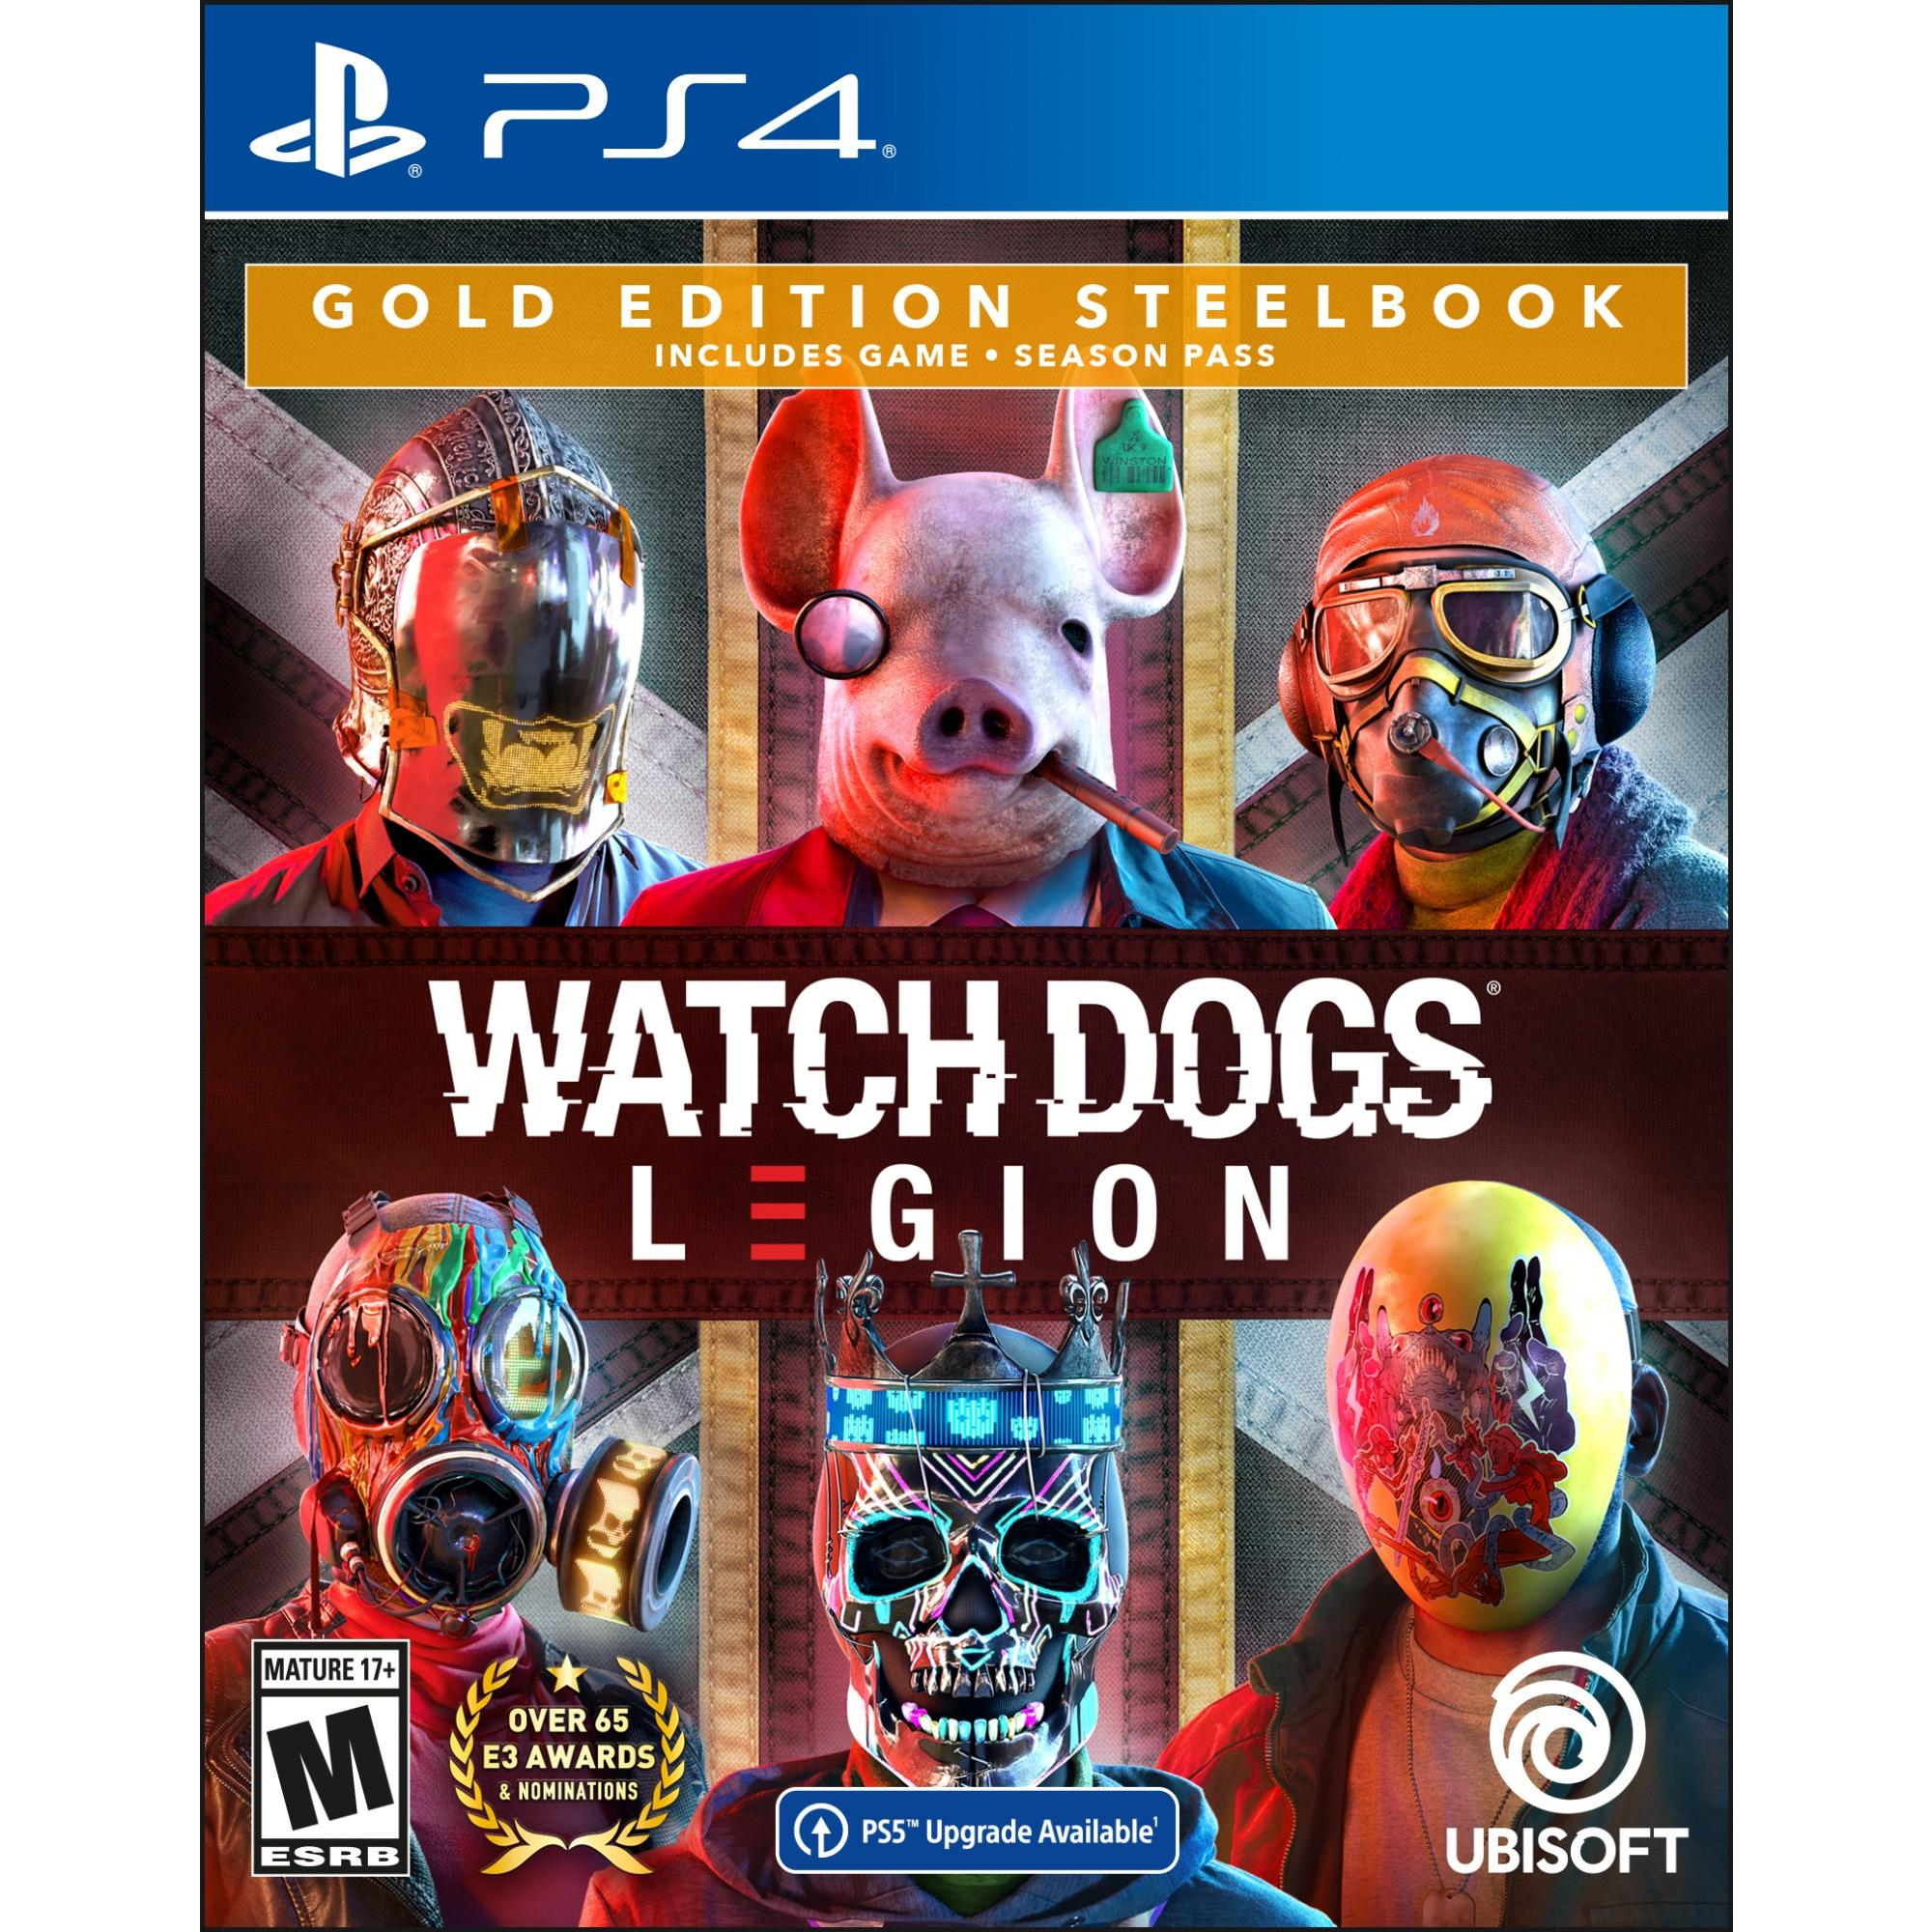 Watch Dogs Legion Playstation 4 Gold Steelbook Edition With Free Upgrade To The Digital Ps5 Version Walmart Com Walmart Com